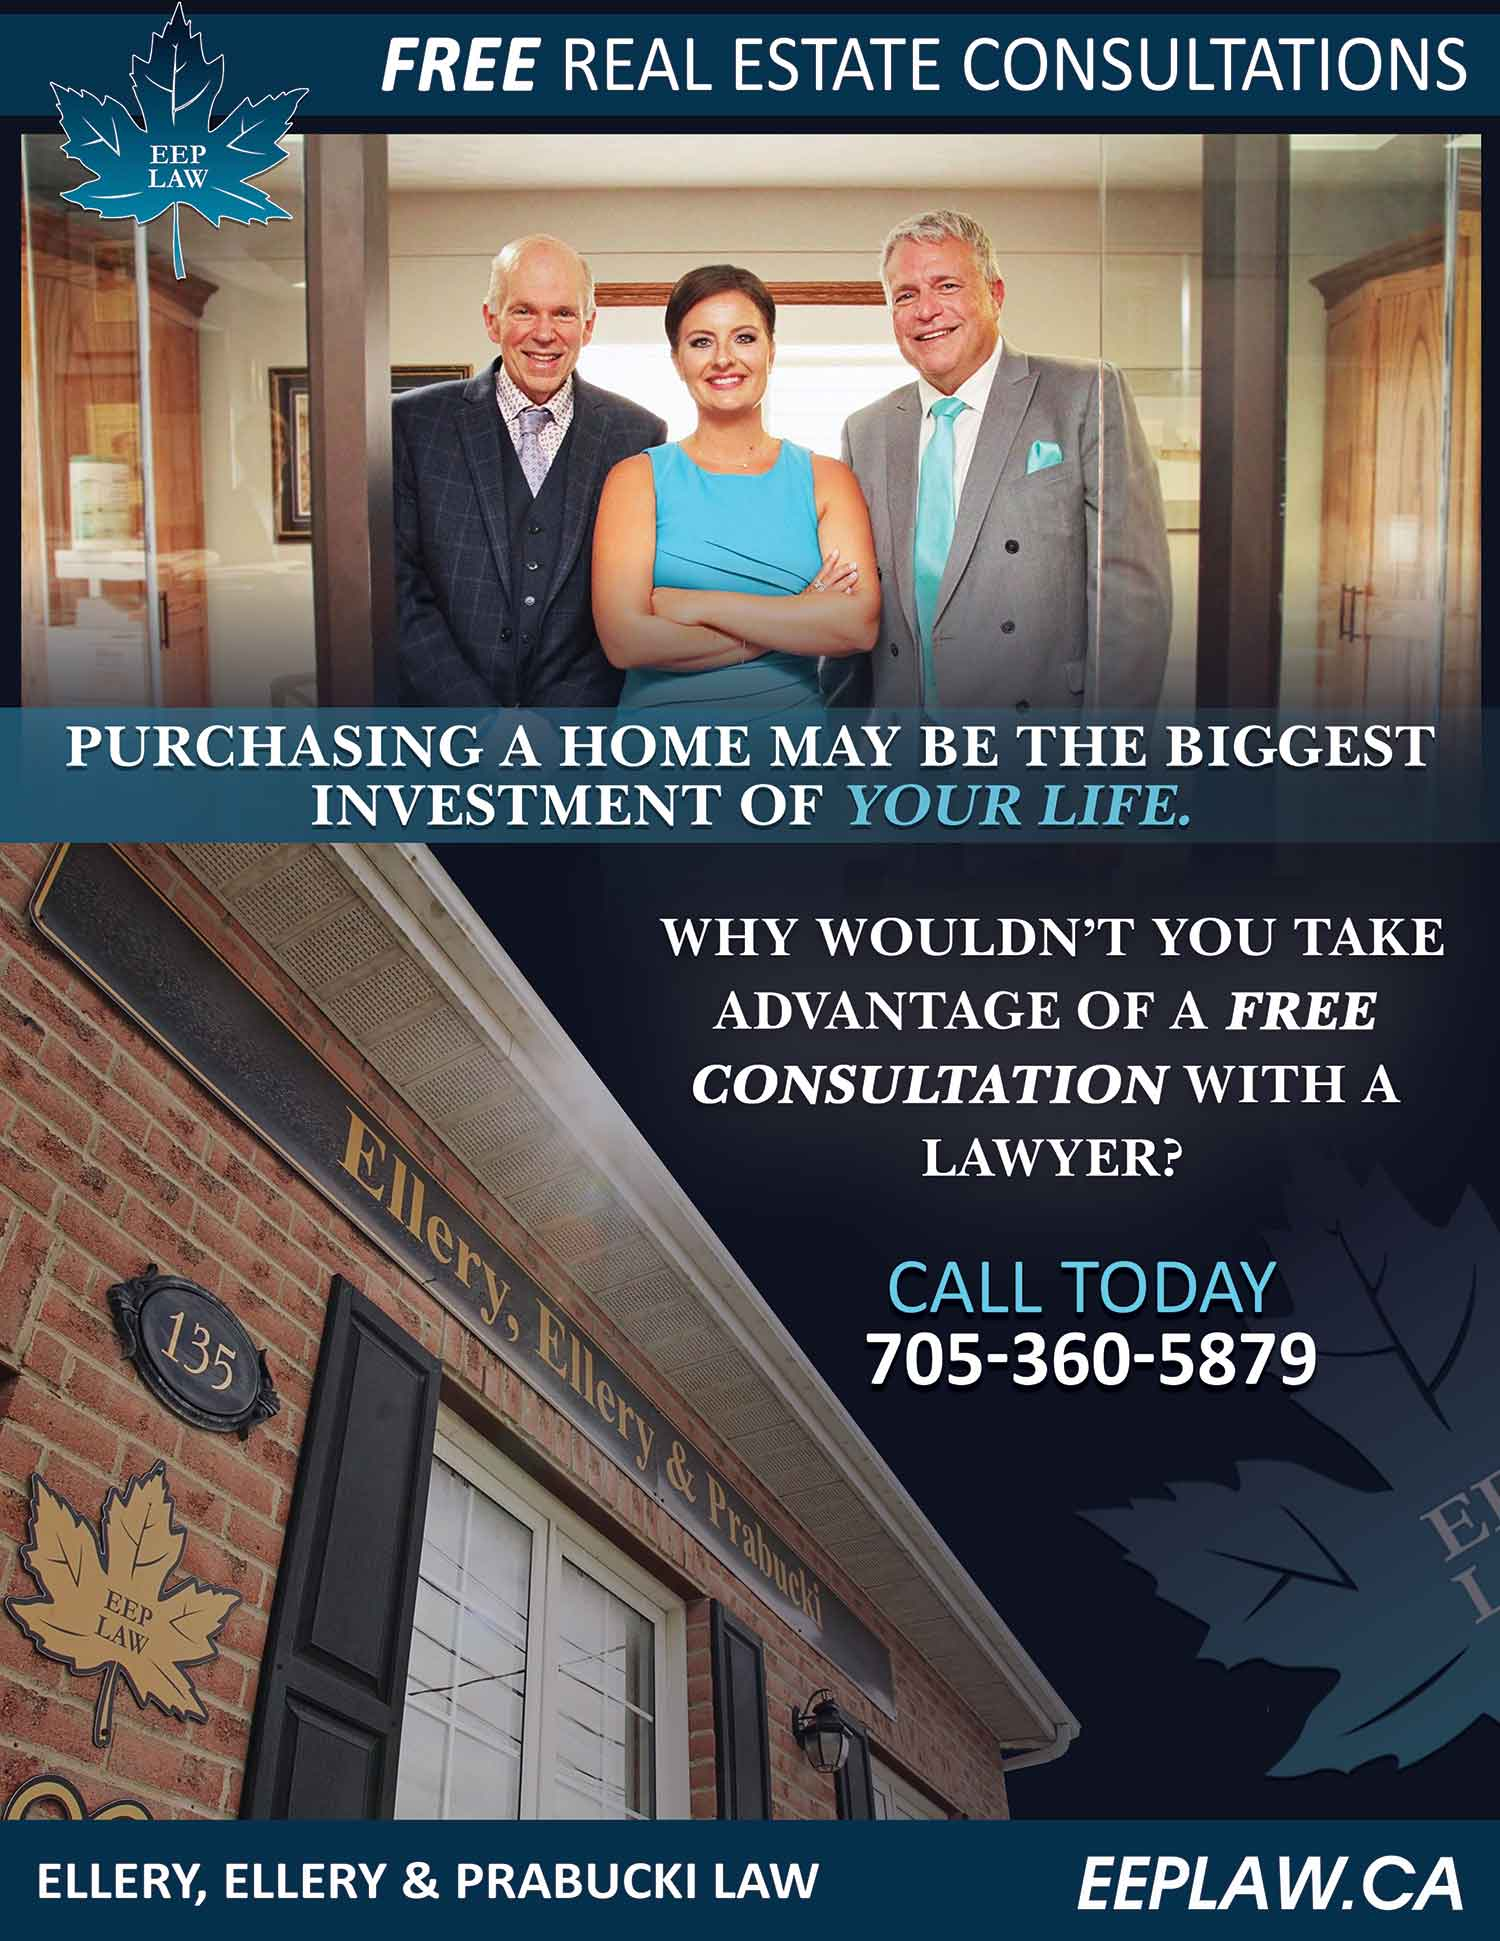 Purchasing a home may be the biggest investment of your life. Why wouldn't you take advantage of a FREE consultation with a lawyer? Call (705) 360-5879.